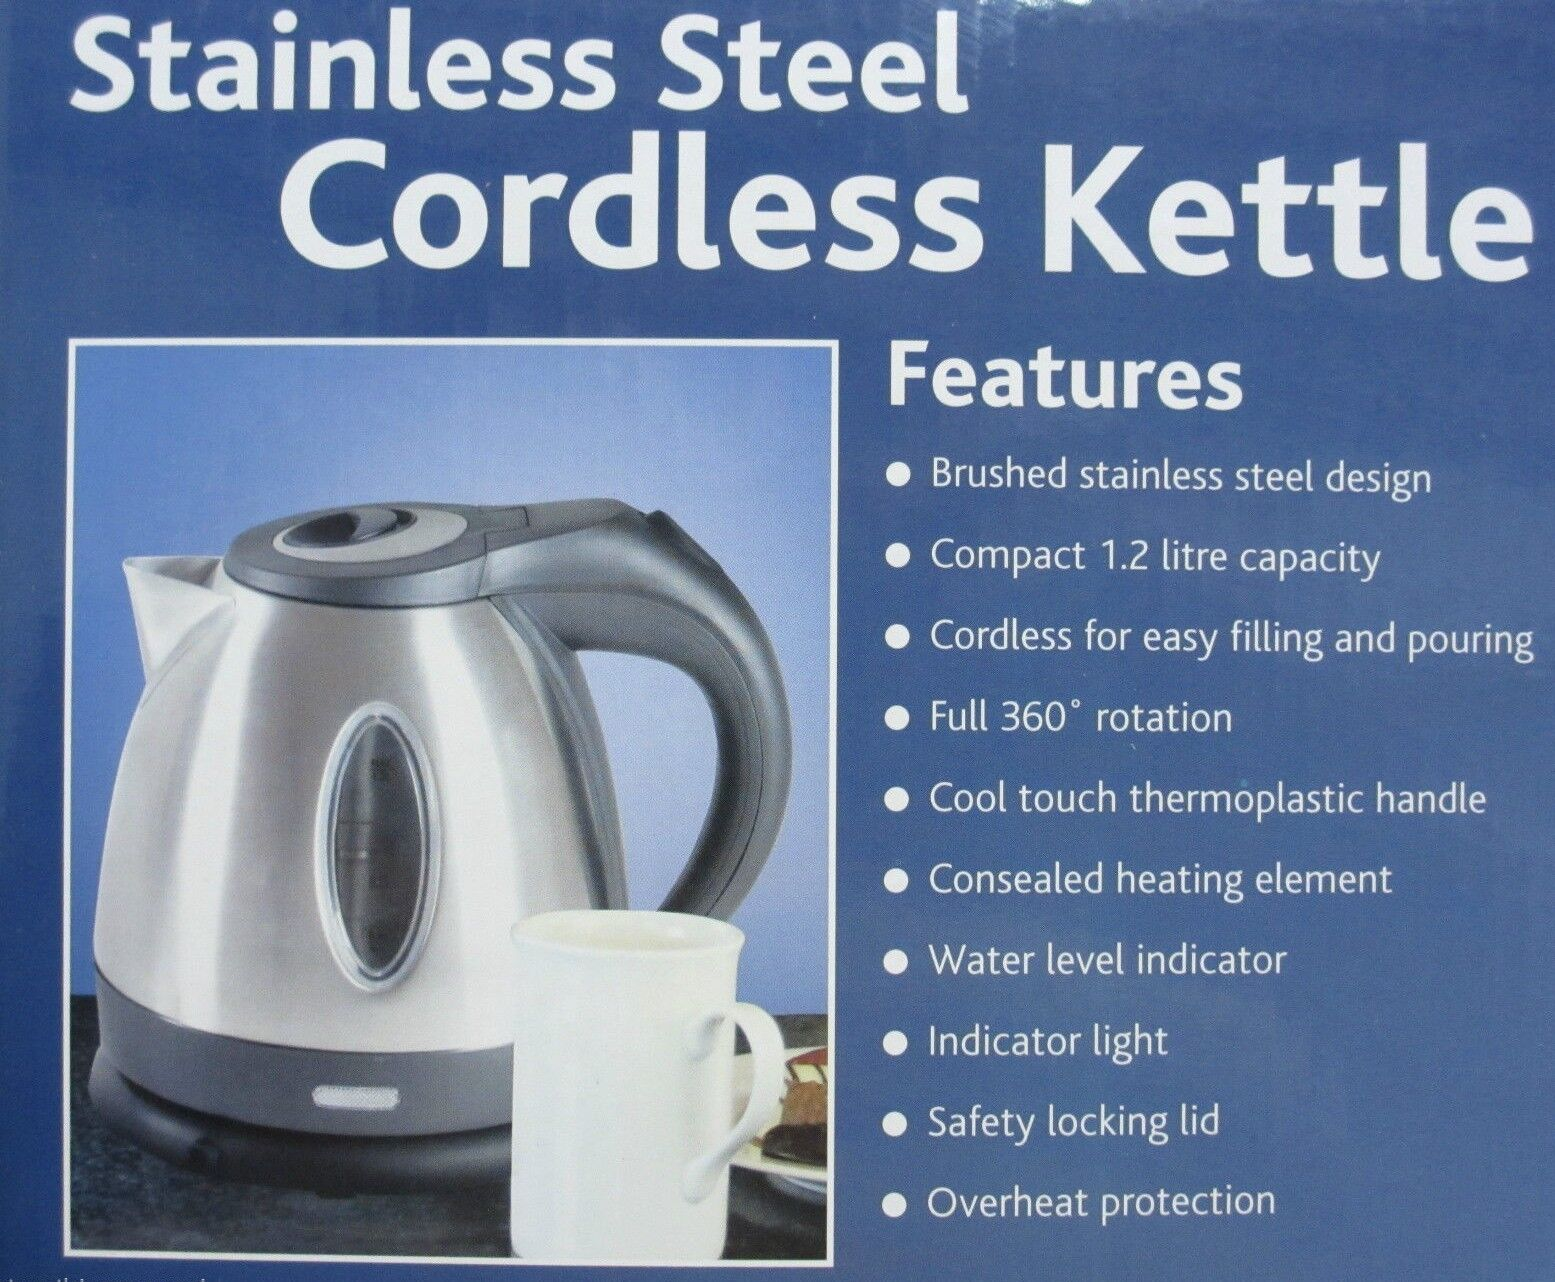 Stainless Steel Cordless Kettle - Low Wattage Kettle - 1.2Litre ...